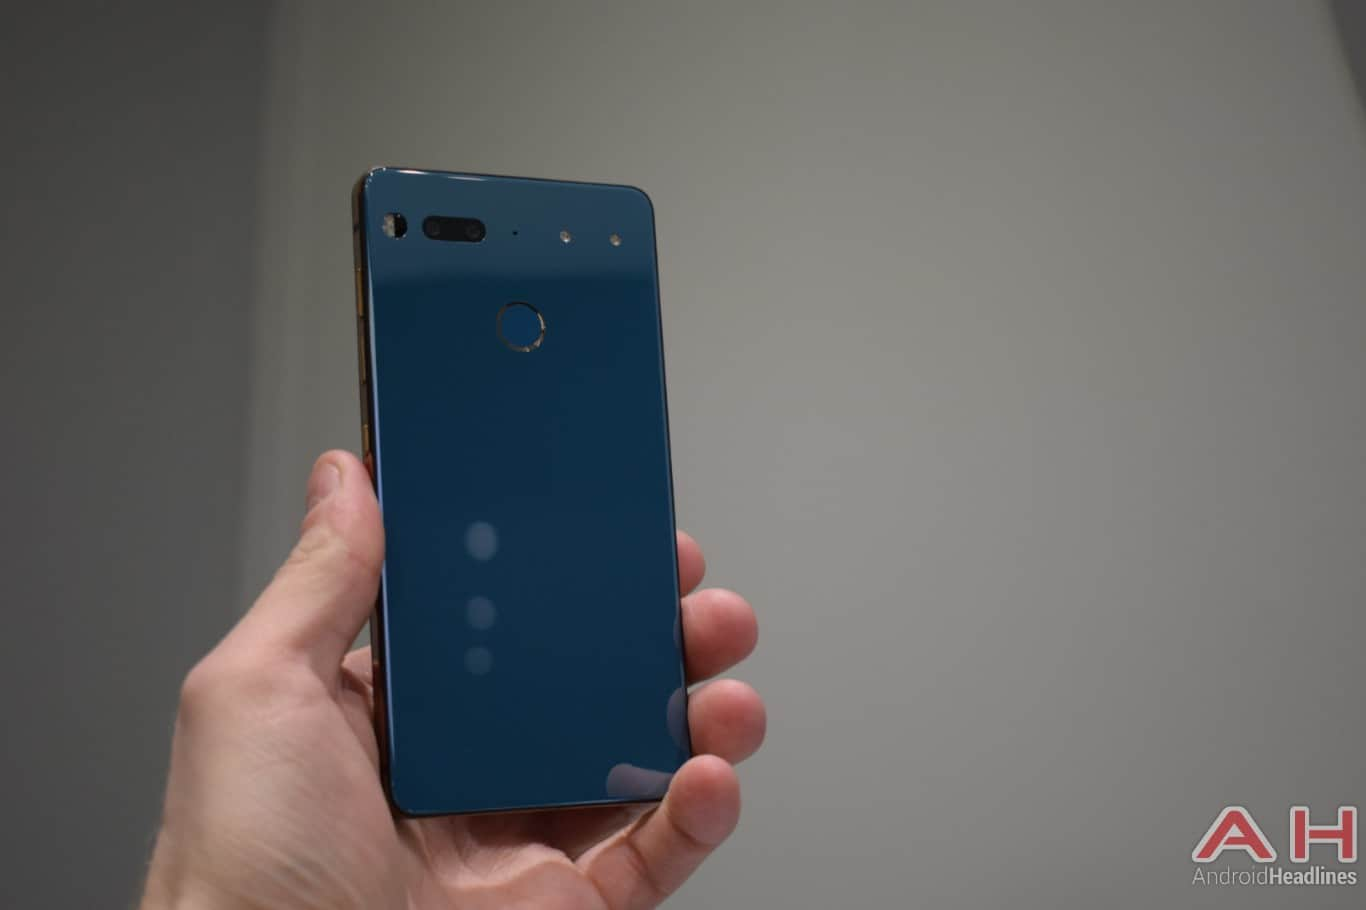 AH Essential PH 1 hands on MWC 2018 11